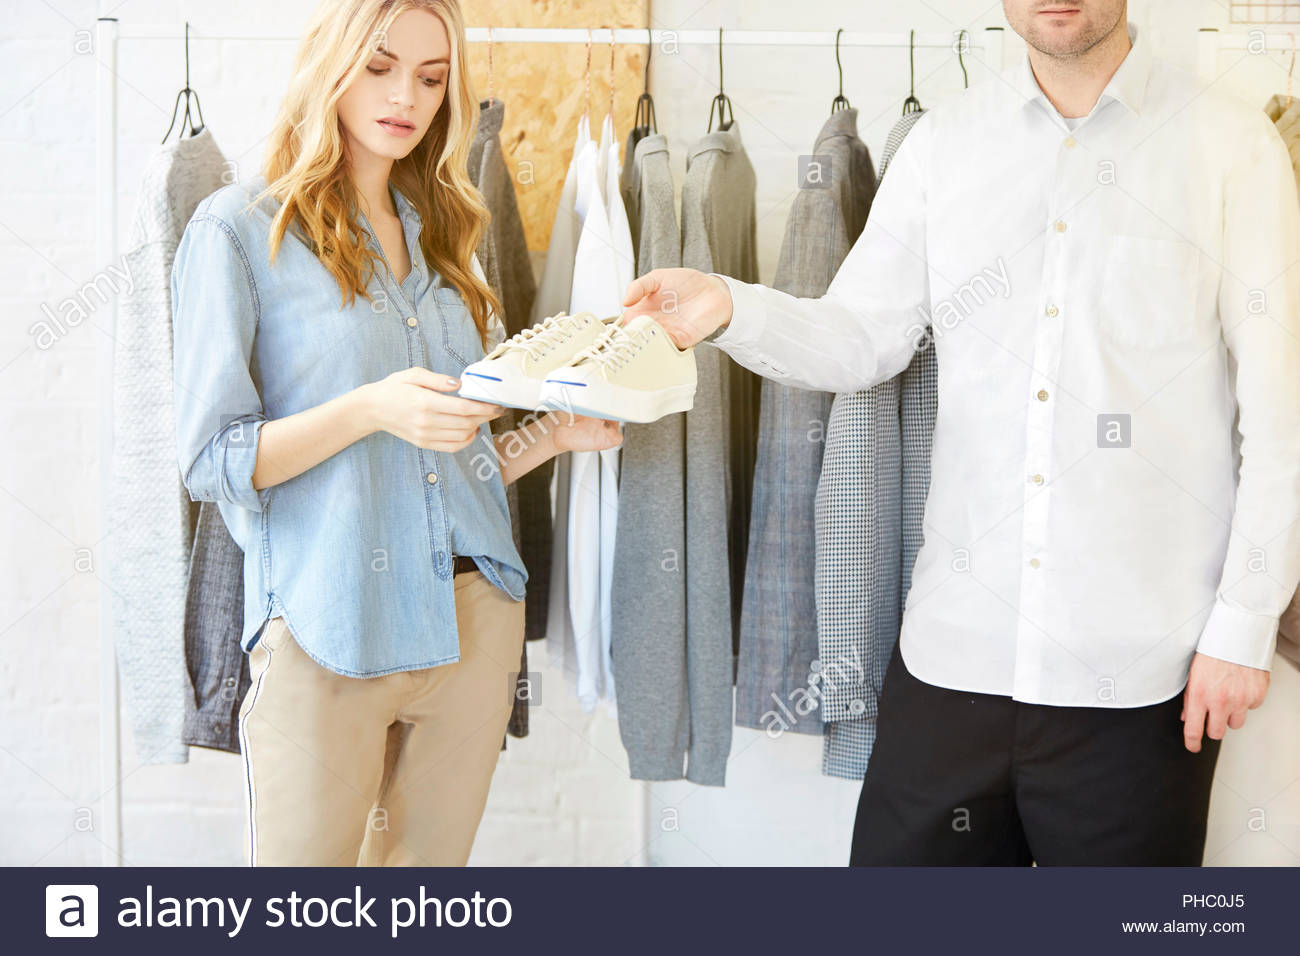 Young woman is handed shoes by shop assistant. - Stock Image